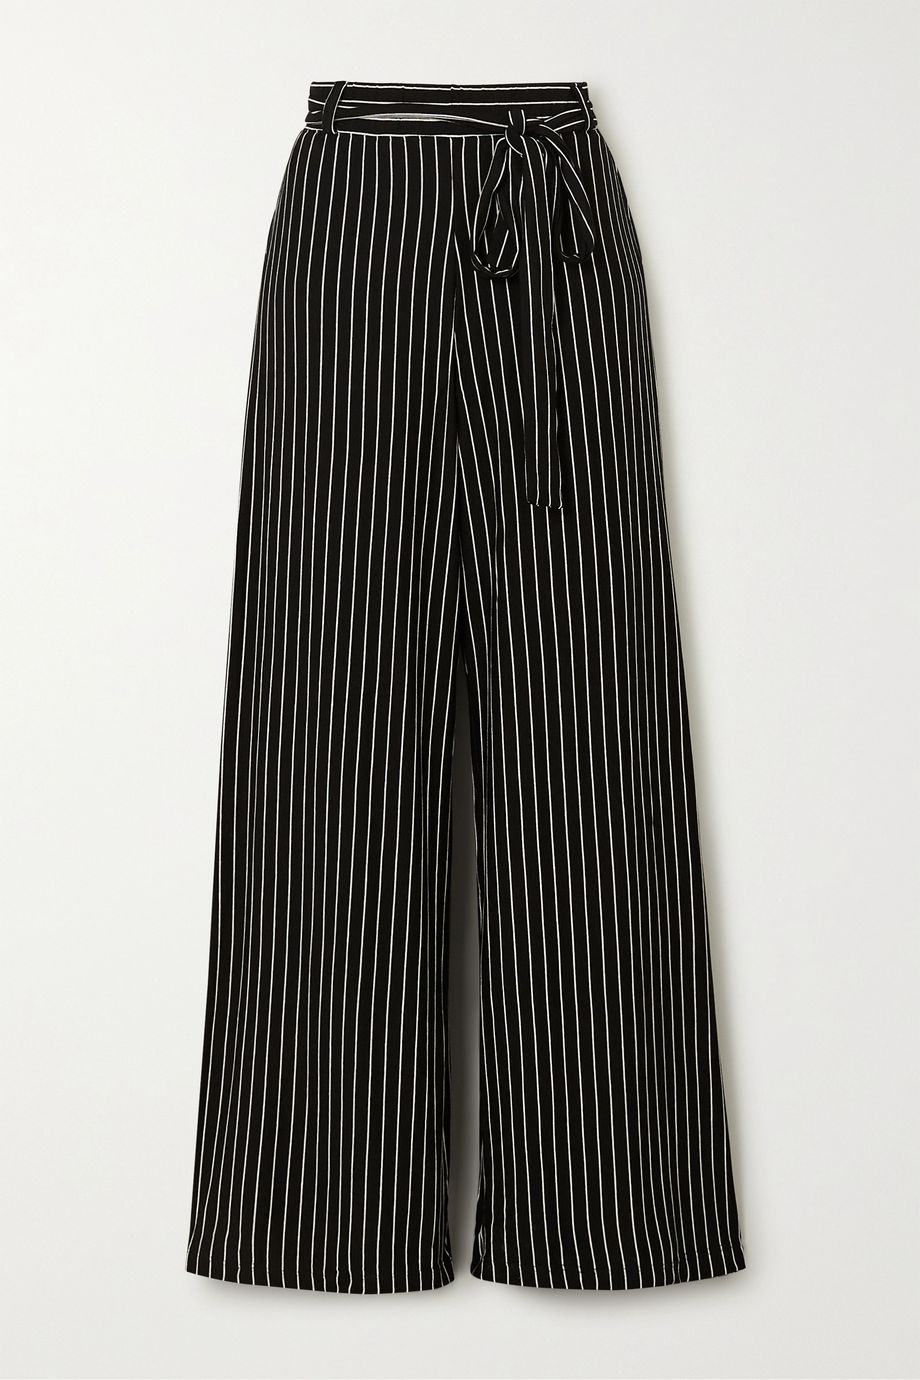 LESET Amber belted pinstriped stretch-jersey wide-leg pants